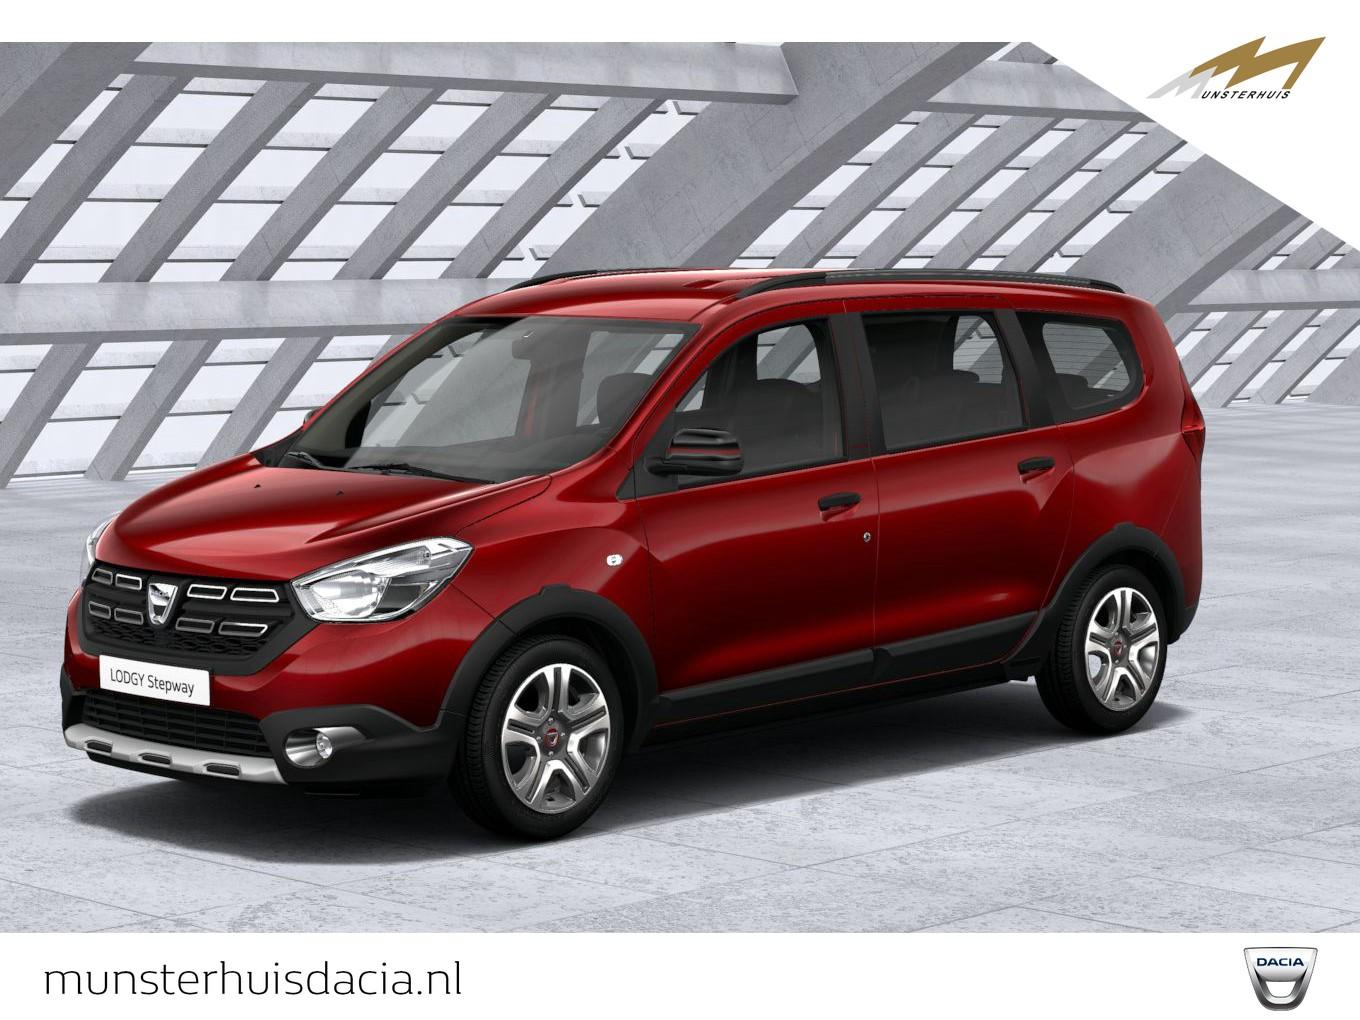 Dacia Lodgy Tce 130 série limitée tech road 7p - nieuw - 7persoons